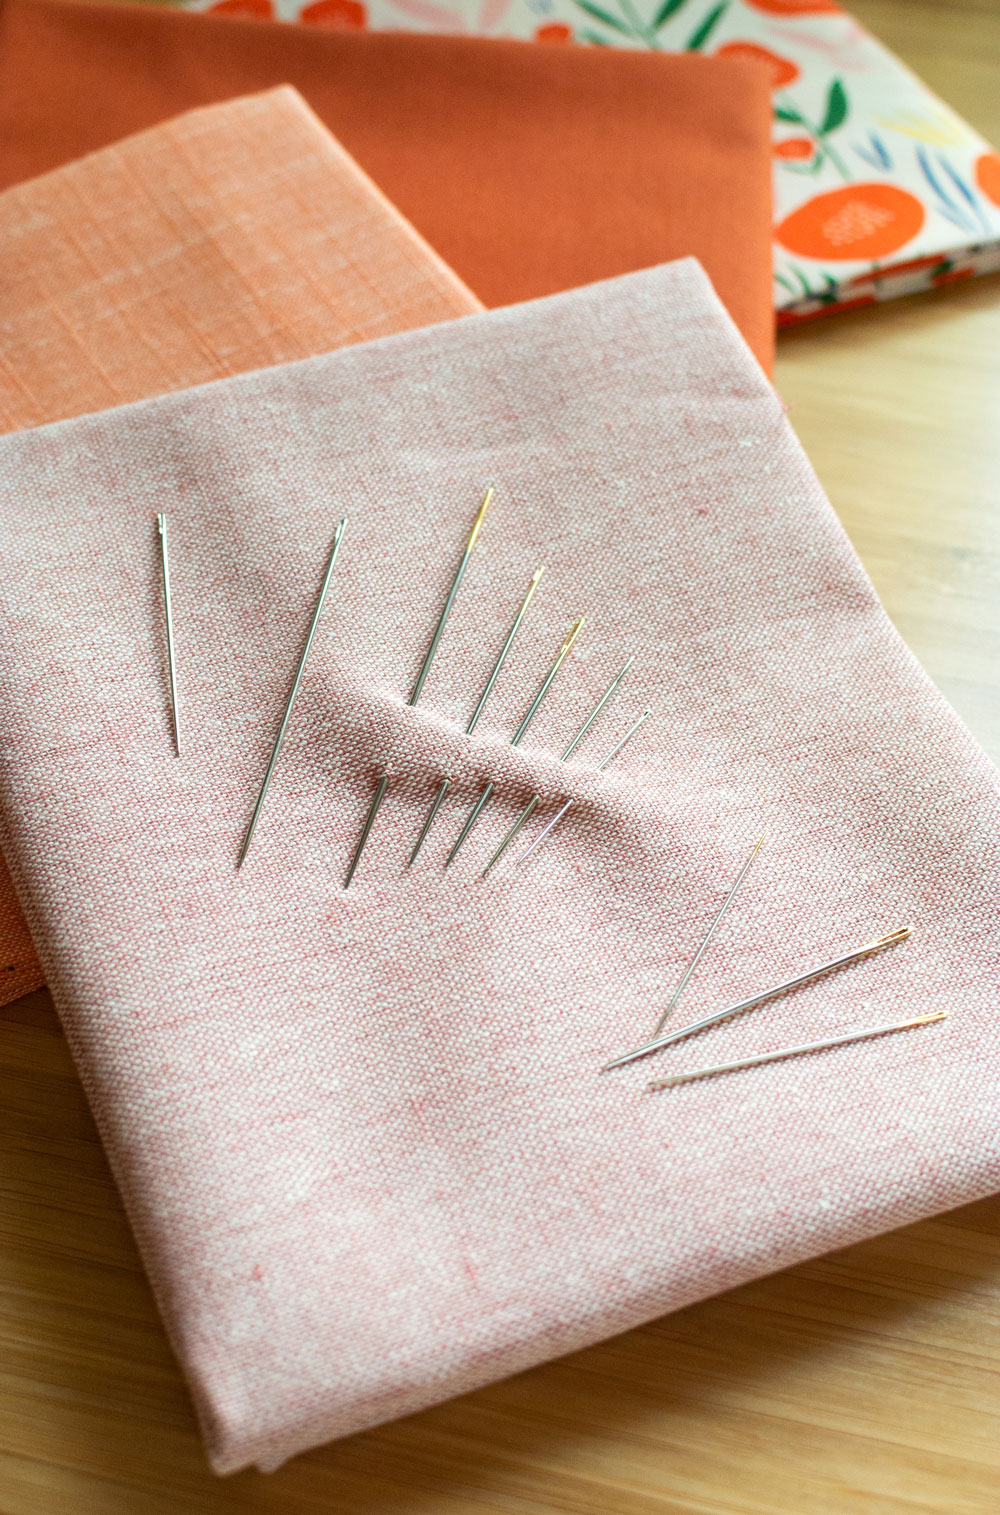 Everything you need to know about hand quilting needles